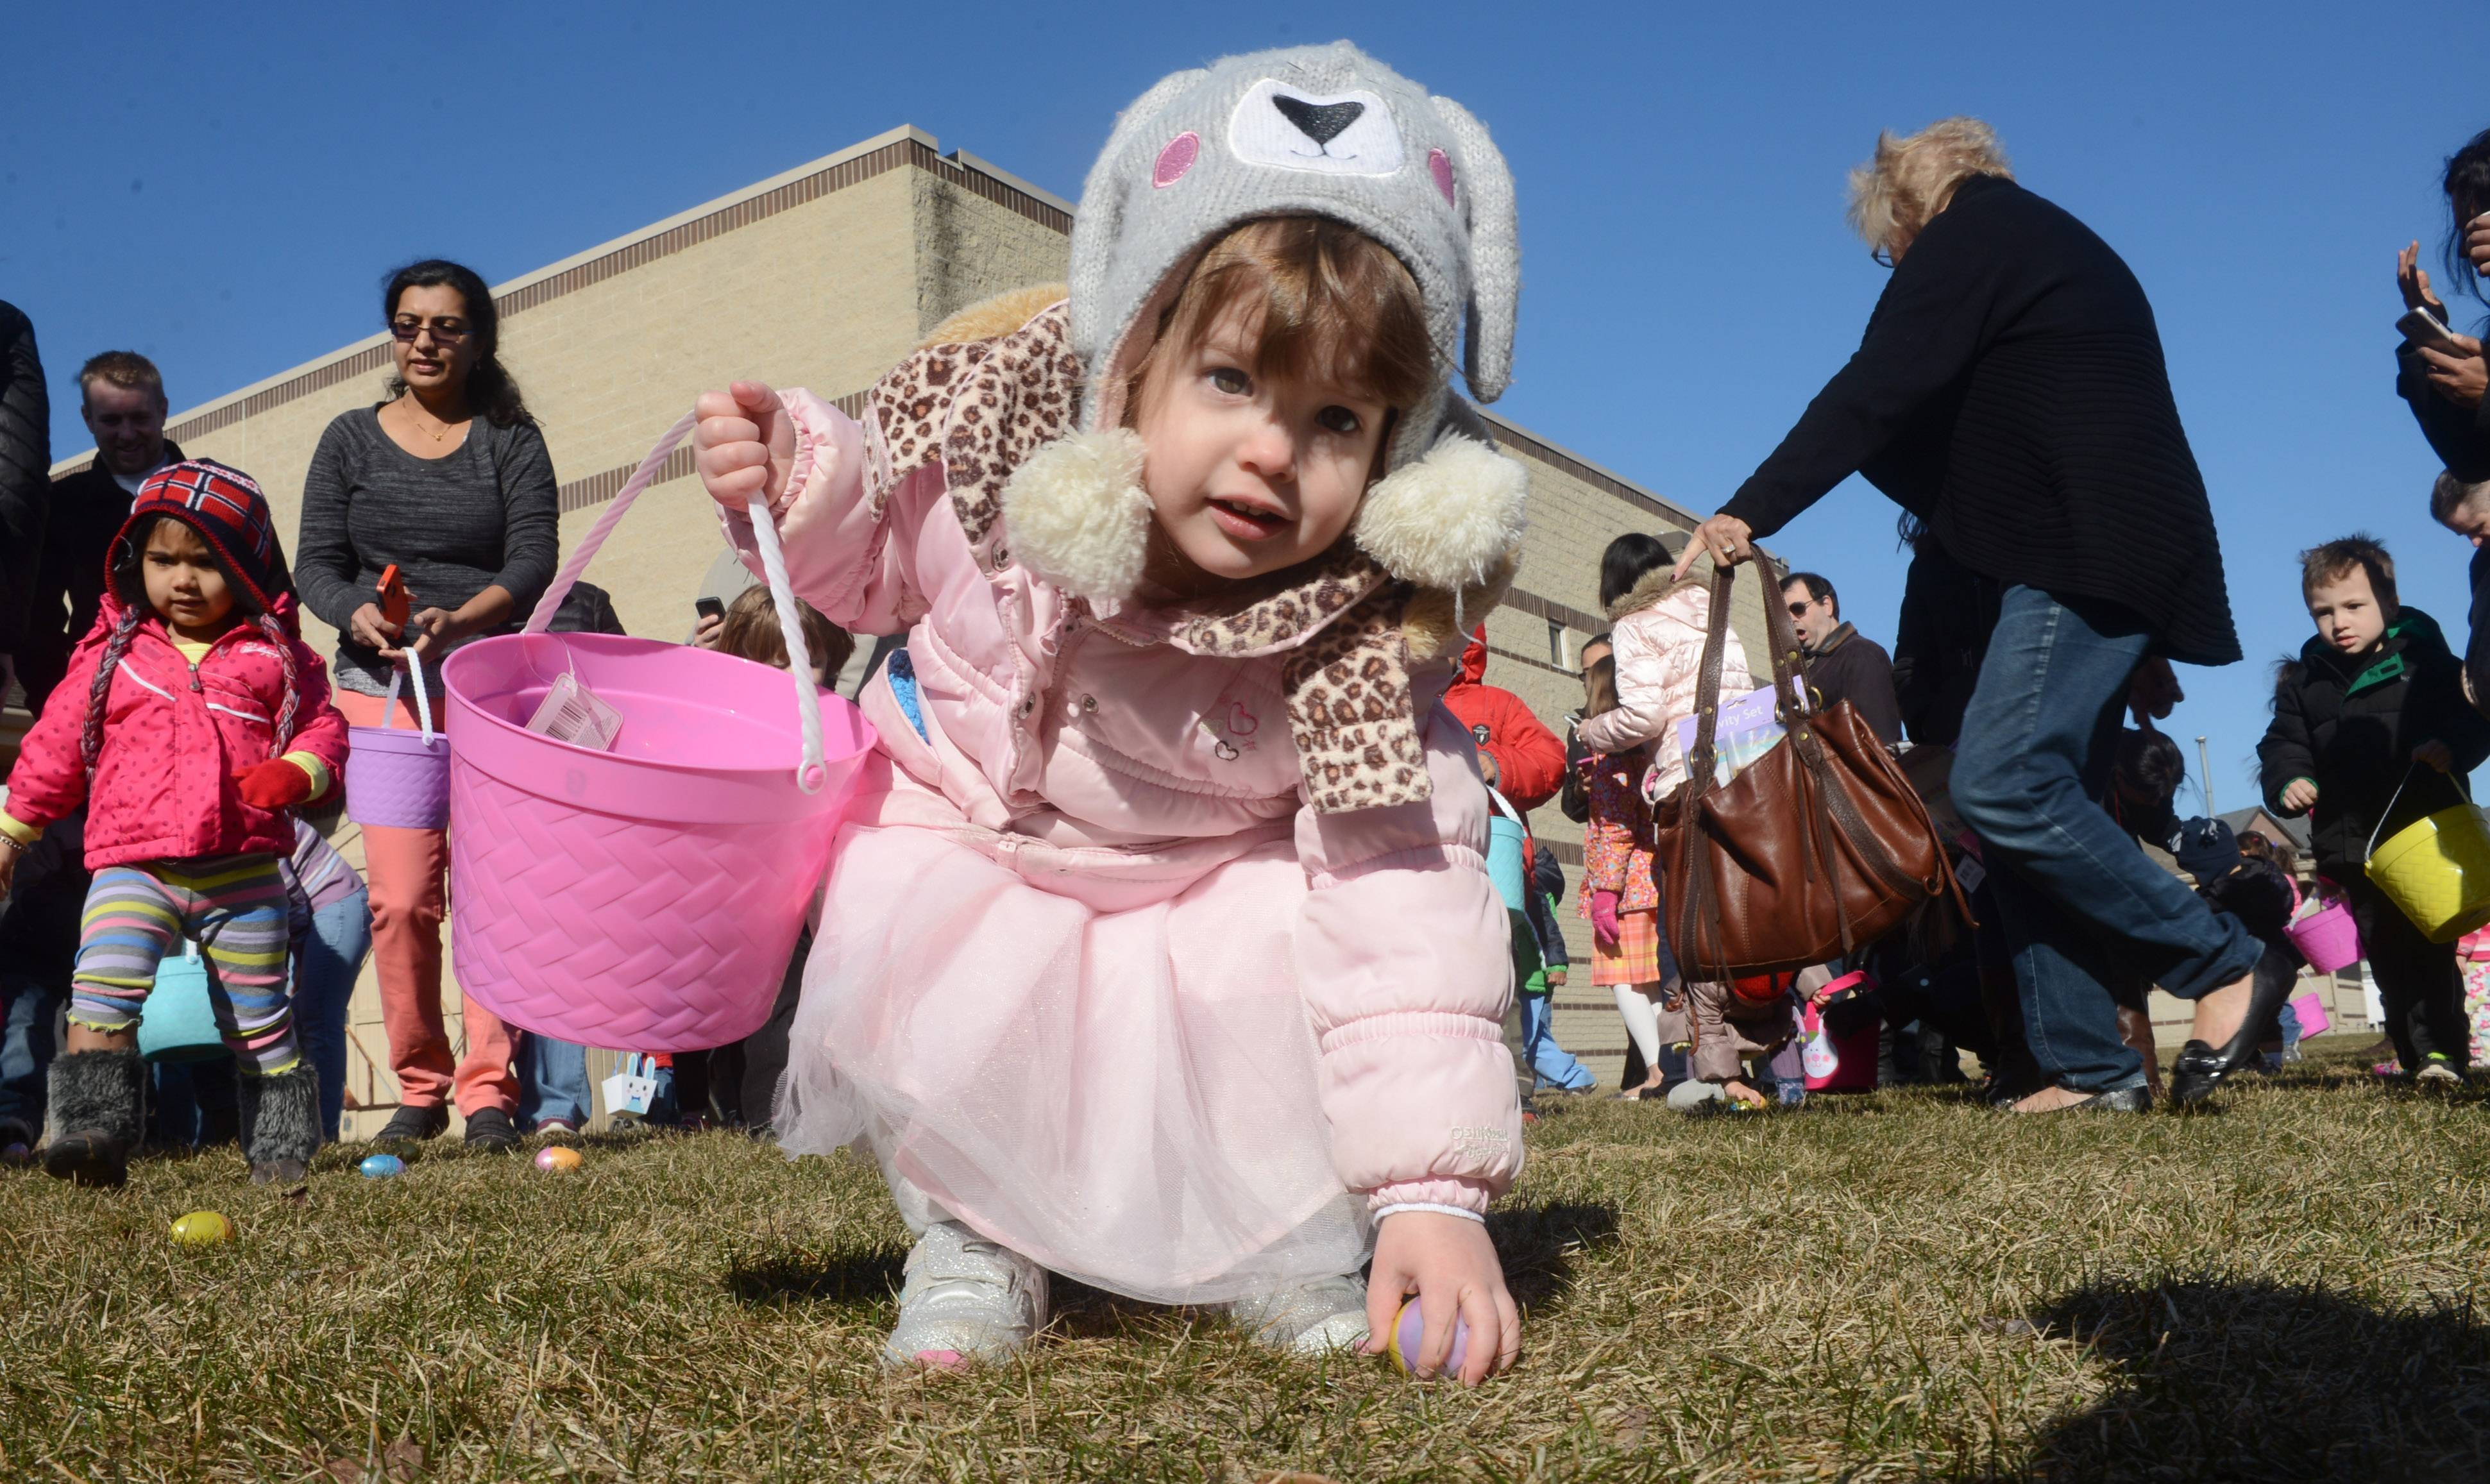 Lorelei Wheeler, 2, of Vernon Hills picks up plastic eggs during the Vernon Hills Park district Hoppin Holiday Hunt and Magic show at the Sullivan Community Center in Vernon Hills Saturday.